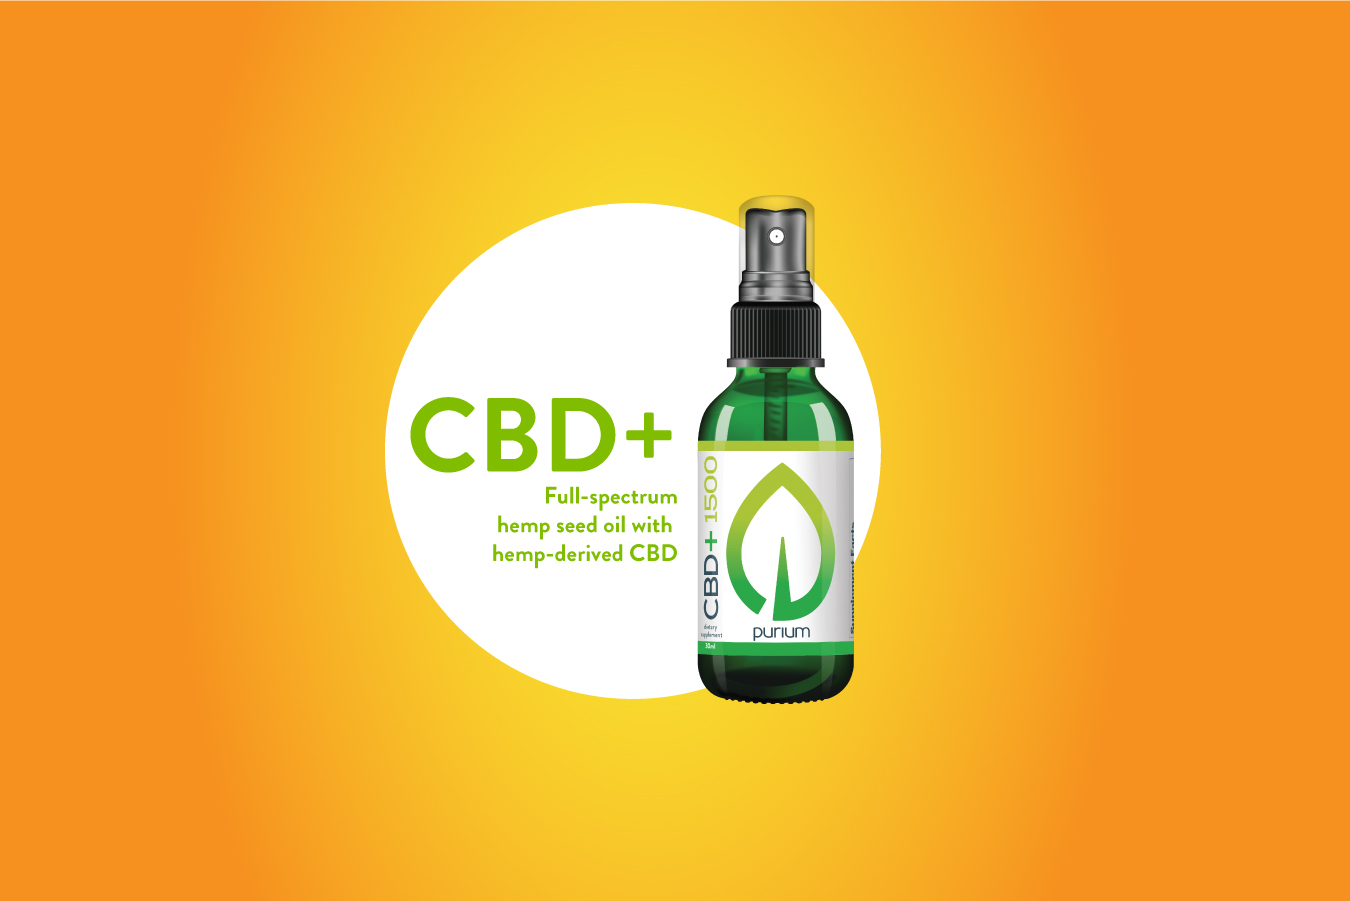 CBD-blogPic-large.jpg